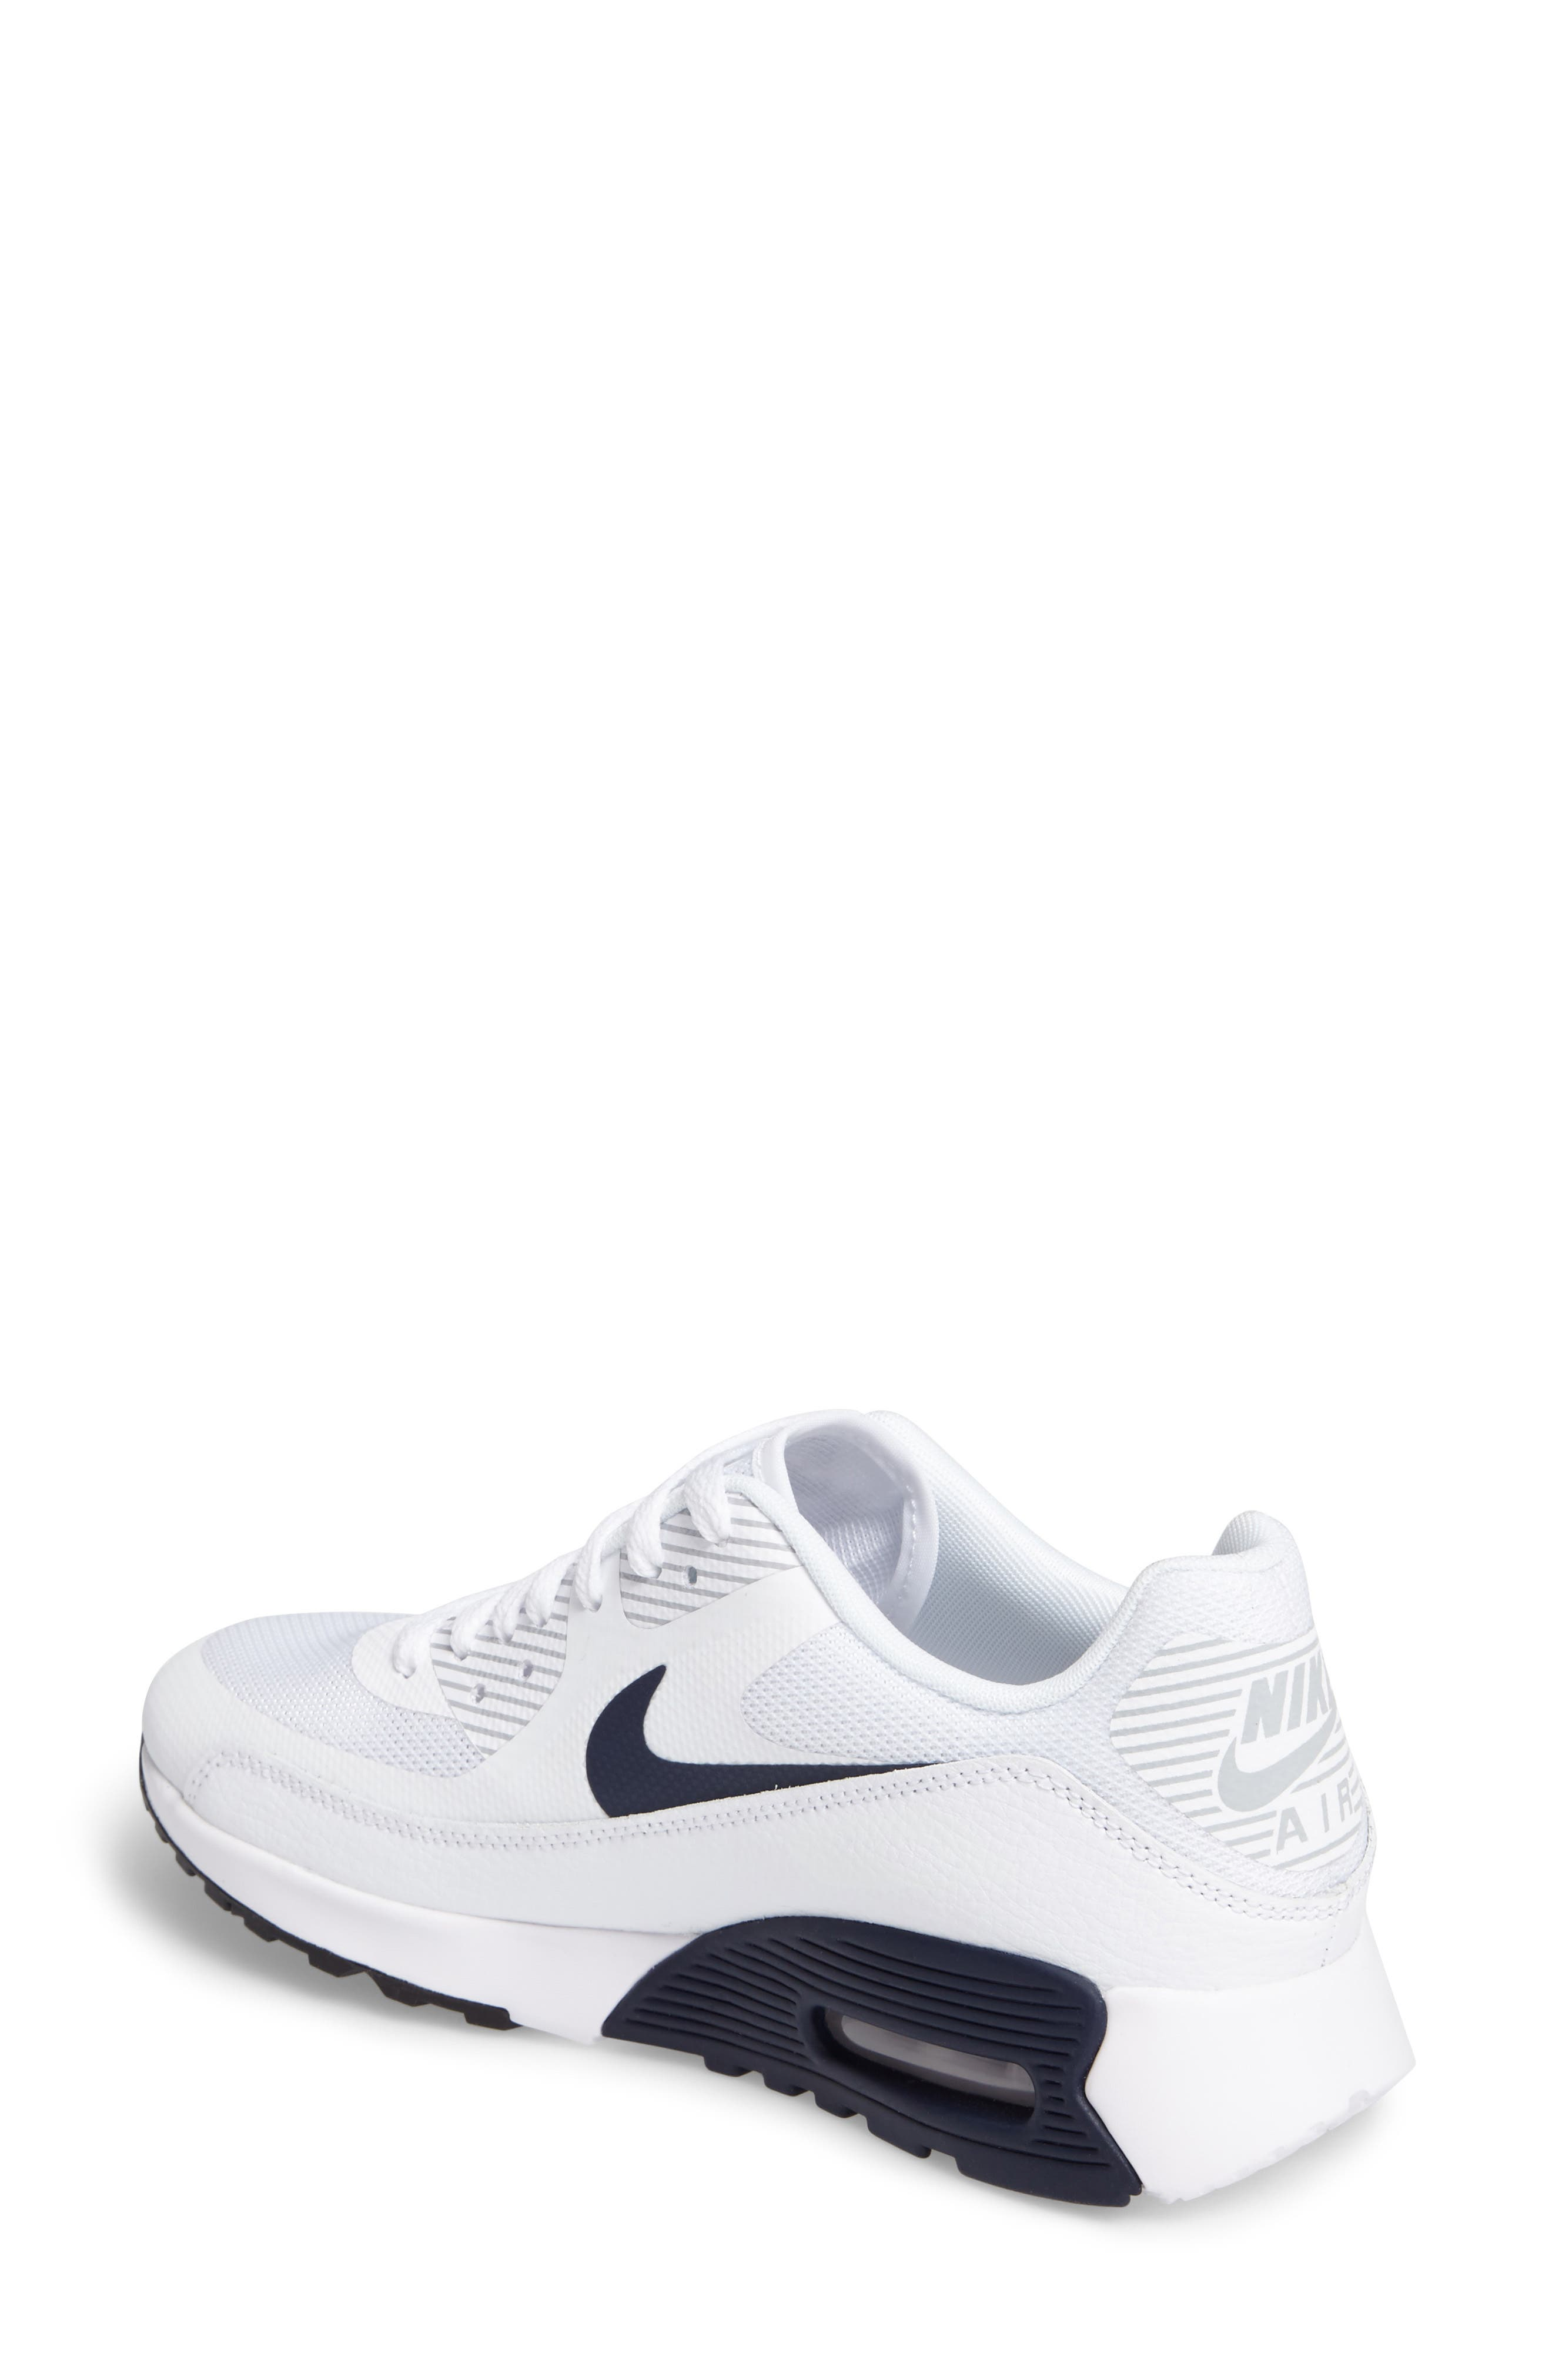 Air Max 90 Ultra 2.0 Sneaker,                             Alternate thumbnail 2, color,                             White/ Navy/ Wolf Grey/ Black